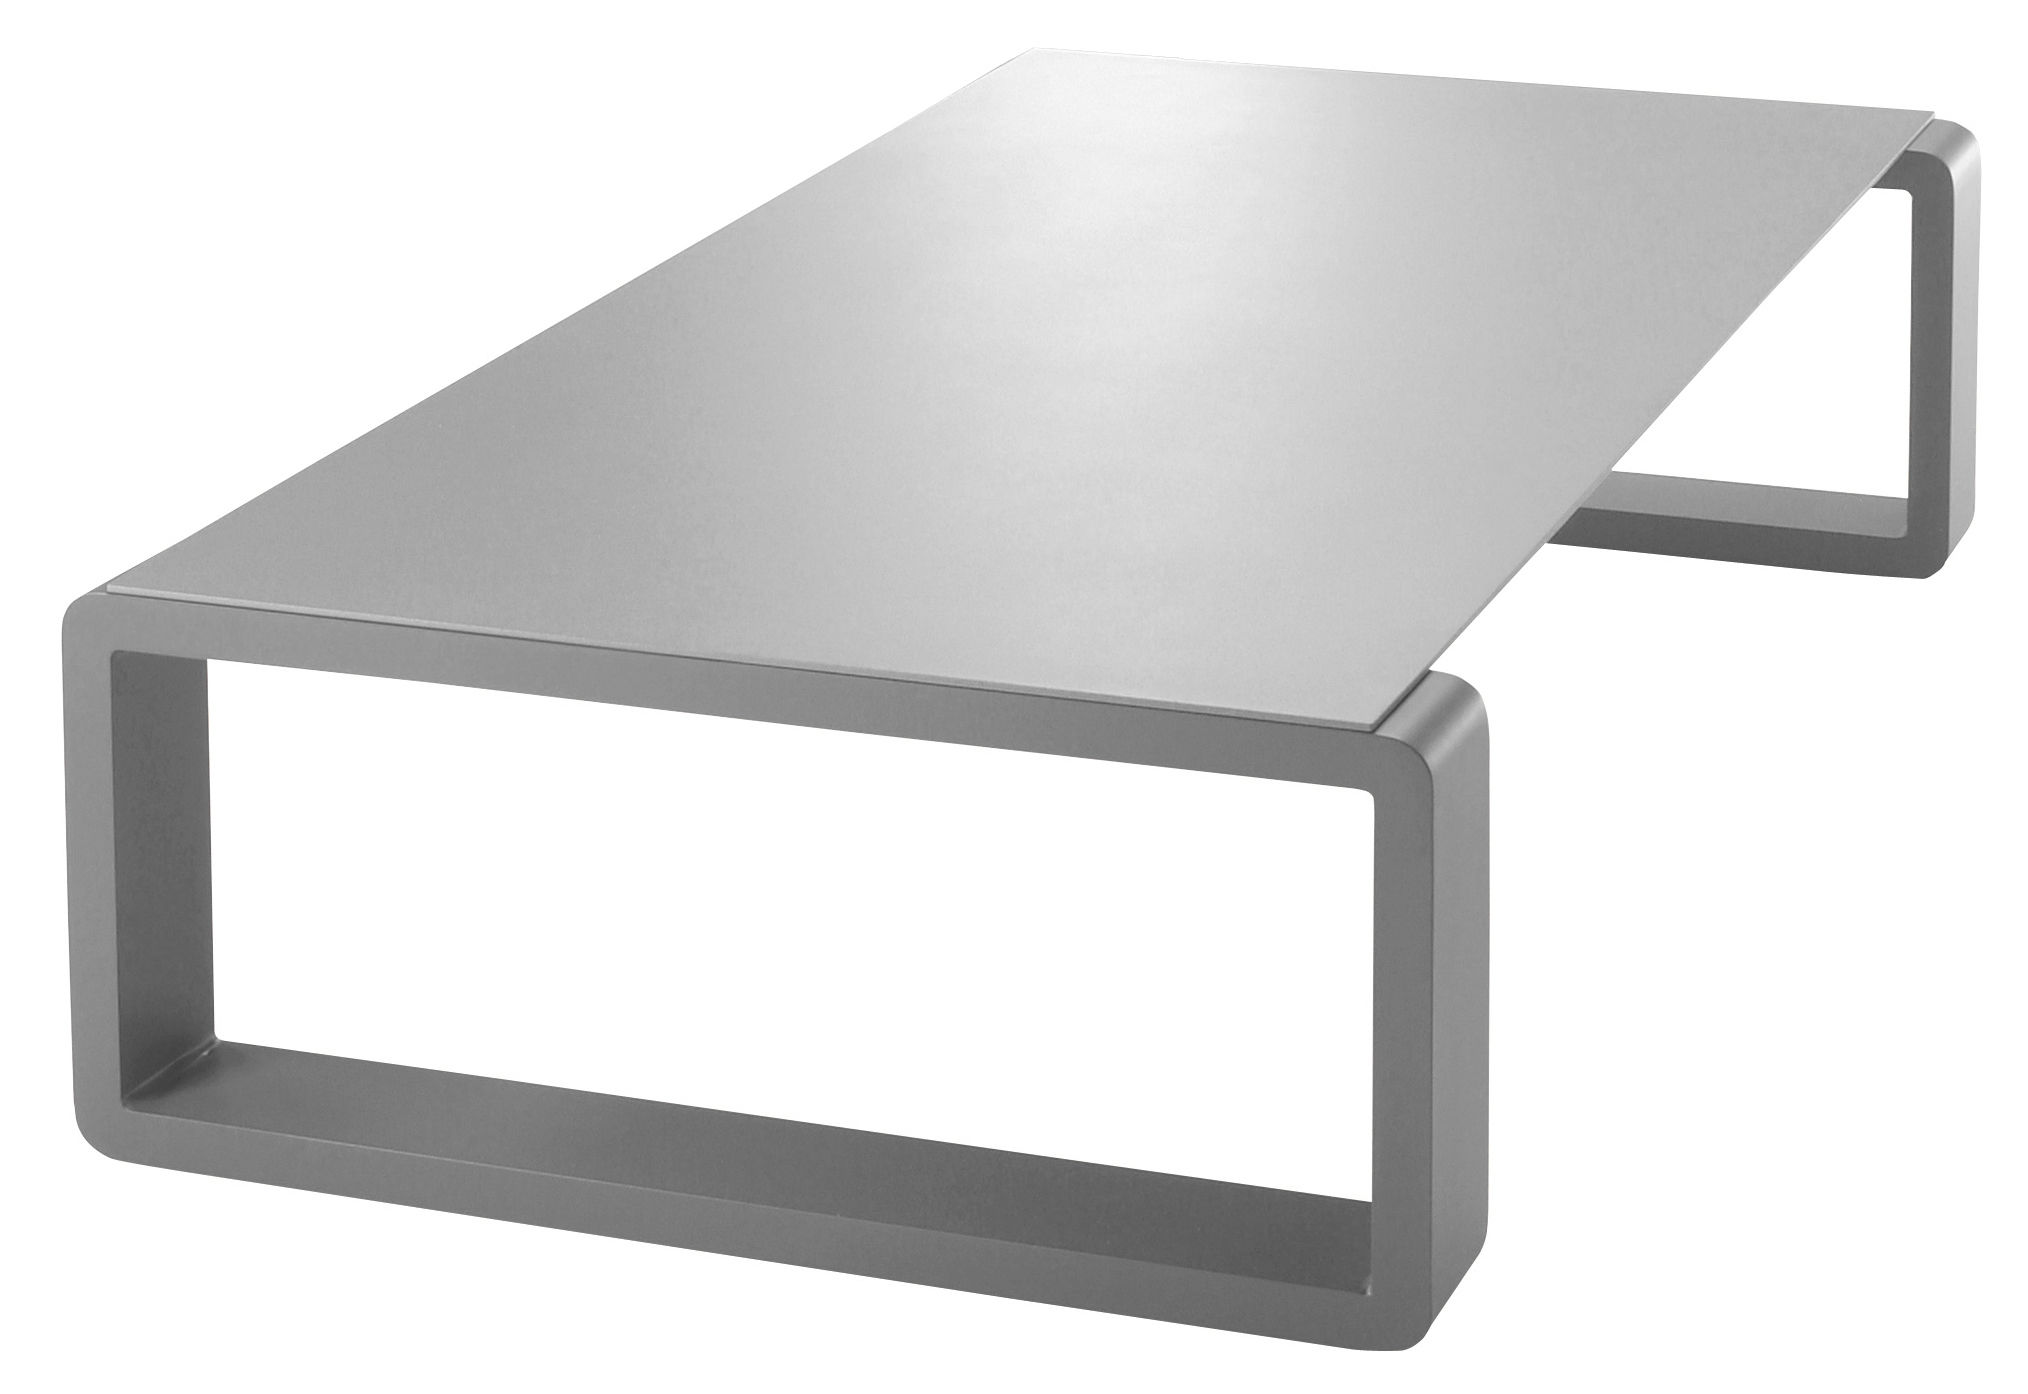 Table basse kama plateau argent structure argent ego for Table basse argent